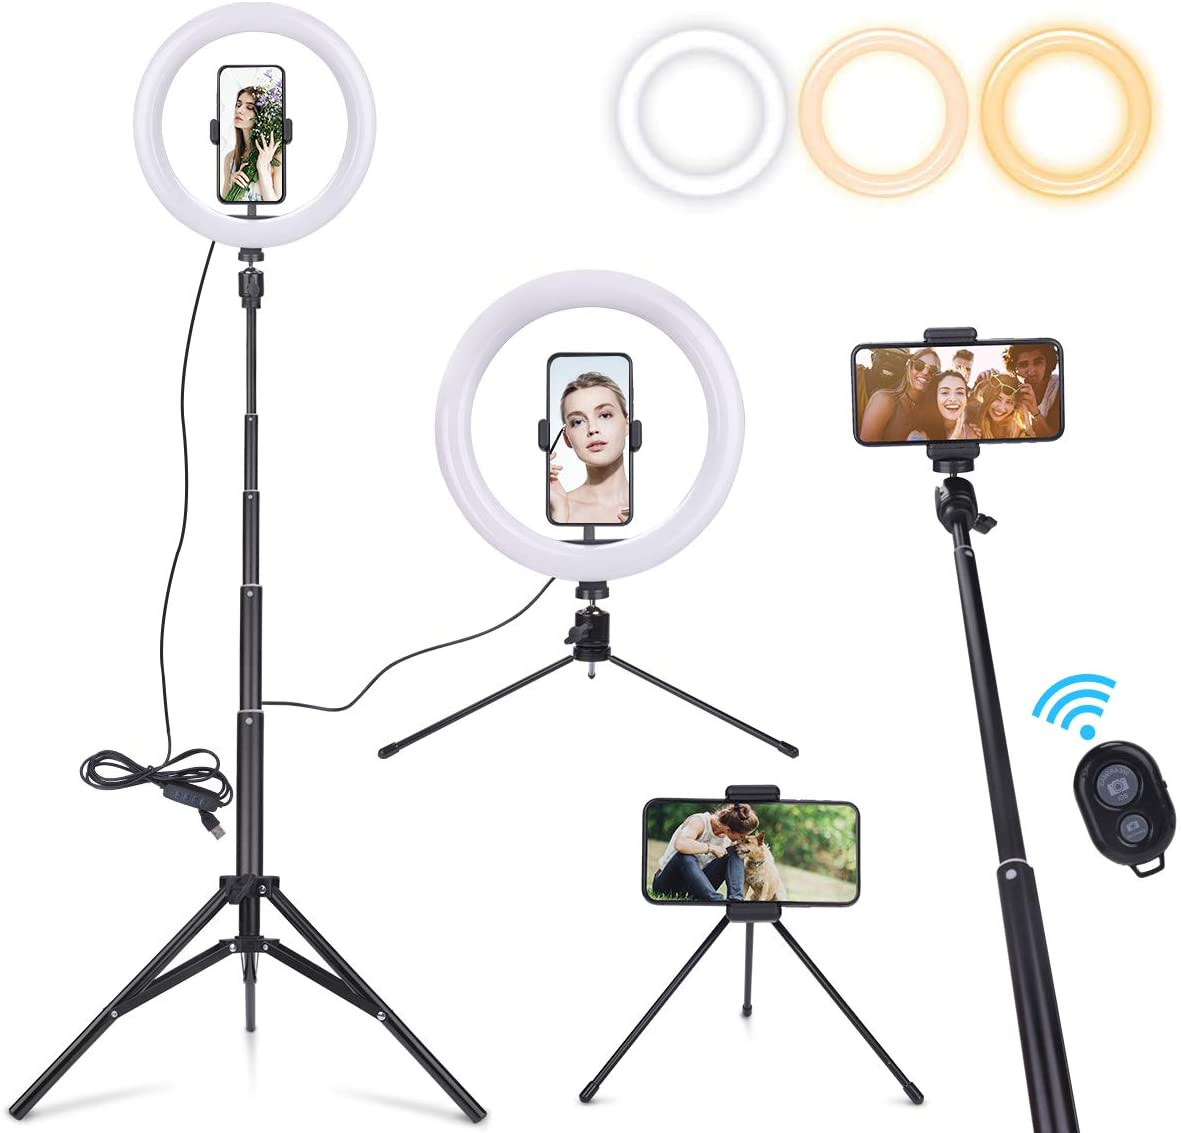 EVILTO 10 Selfie Ring Light with Adjustable Tripod Stand & Desktop Tripod Stand & Cell Phone Holder for Live Stream/Makeup, Dimmable LED Ringlight 3 Modes 10 Brightness Levels for TikTok/YouTube